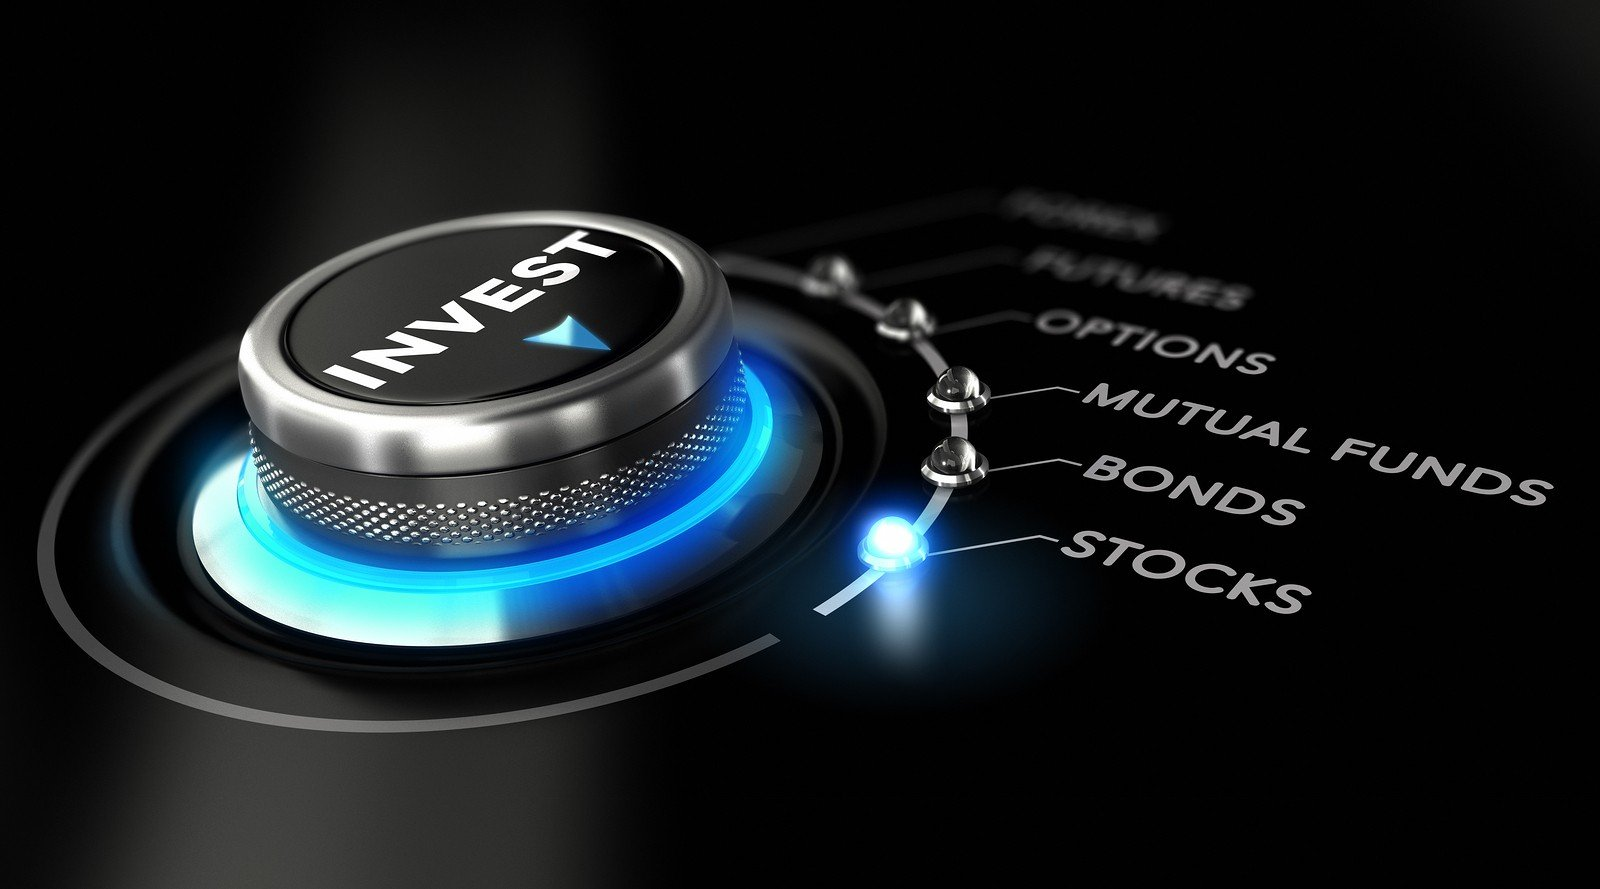 Switch button positioned on the word stock black background and blue light. Conceptual image for illustration of investment strategy